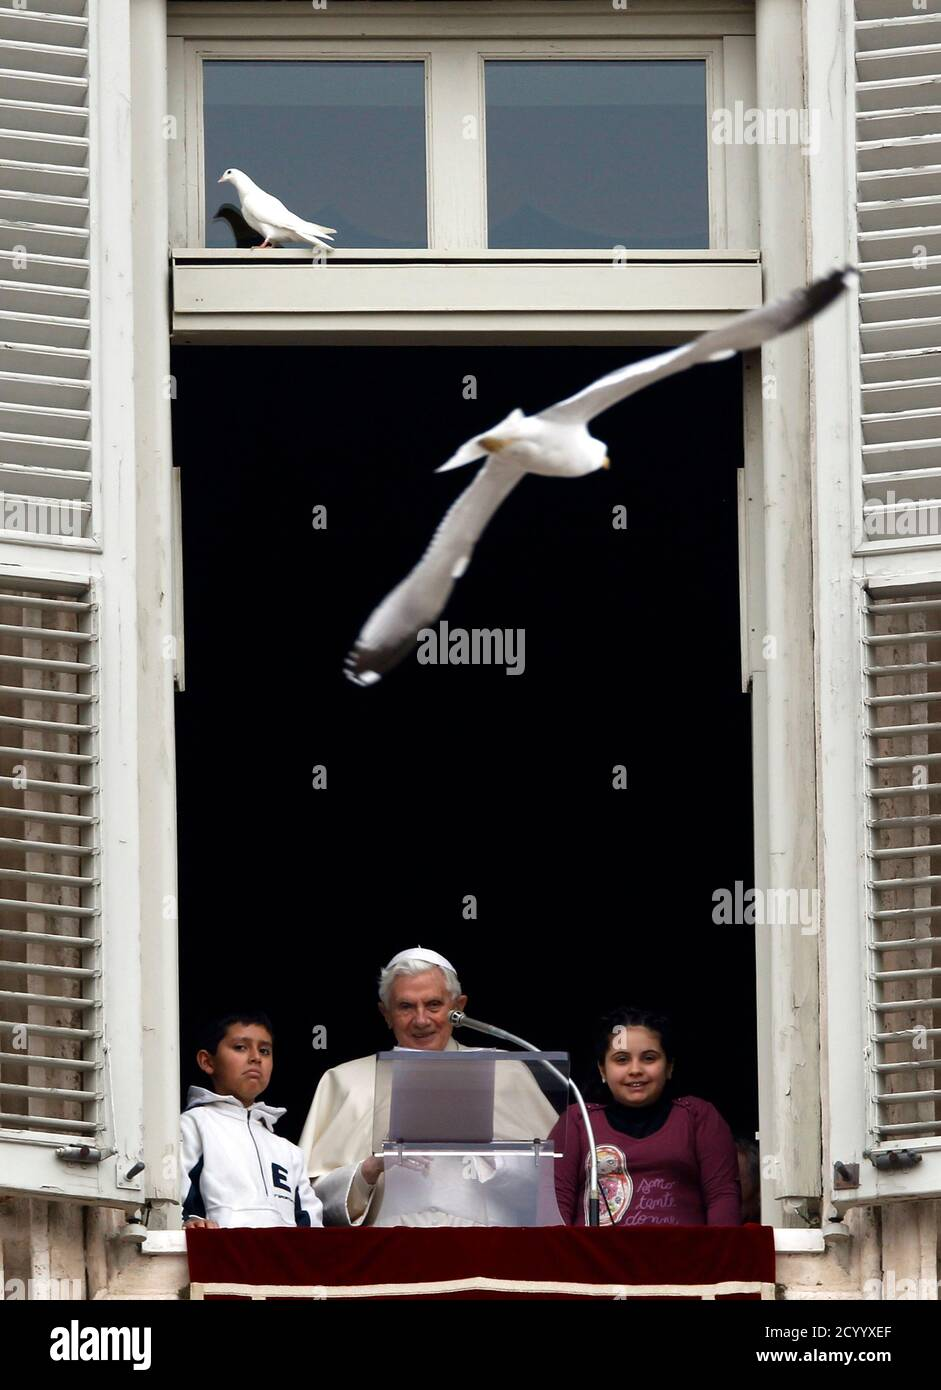 """Pope Benedict XVI and two young members of """"Azione Cattolica"""" (Catholic Action movement) look on as a seagull (top R) flies after he released doves from a window of his private apartments while leading the Angelus prayer in Saint Peter's Square at the Vatican January 29, 2012. REUTERS/Alessandro Bianchi (VATICAN - Tags: RELIGION) Foto Stock"""